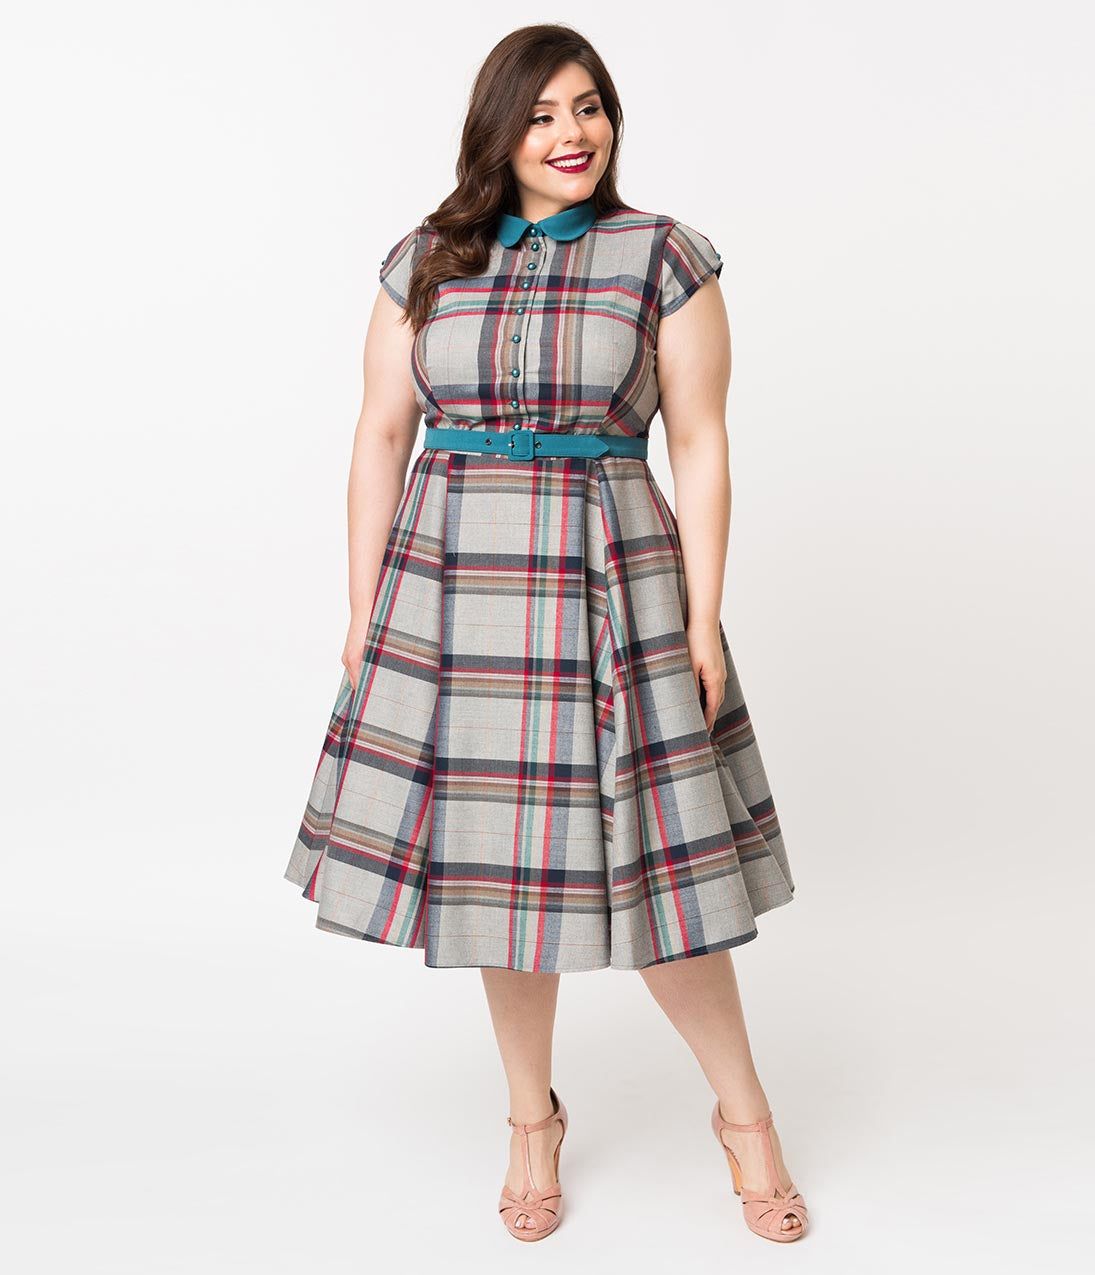 1950s Dresses, 50s Dresses | 1950s Style Dresses Miss Candy Floss Plus Size 1950S Style Grey Tartan Darla Preppy Swing Dress $138.00 AT vintagedancer.com